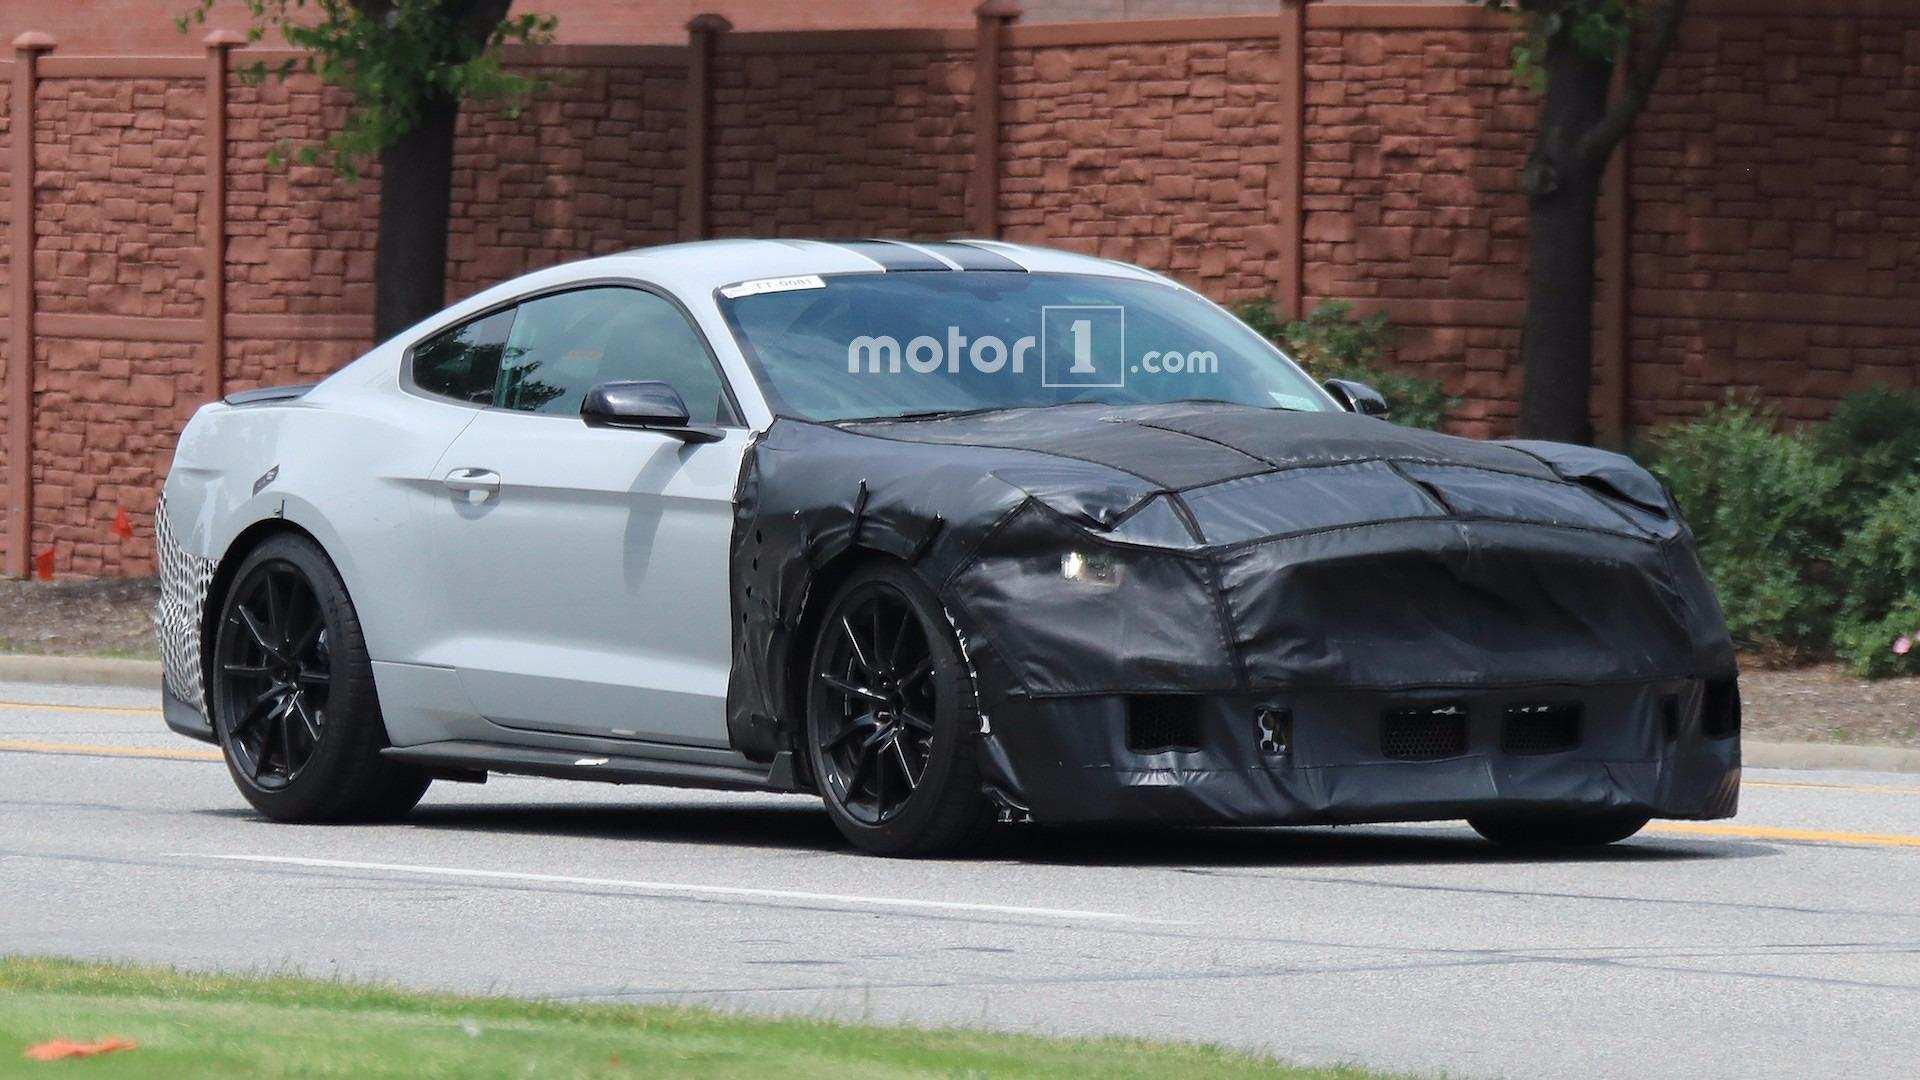 65 New 2019 The Spy Shots Ford Mustang Svt Gt 500 Ratings